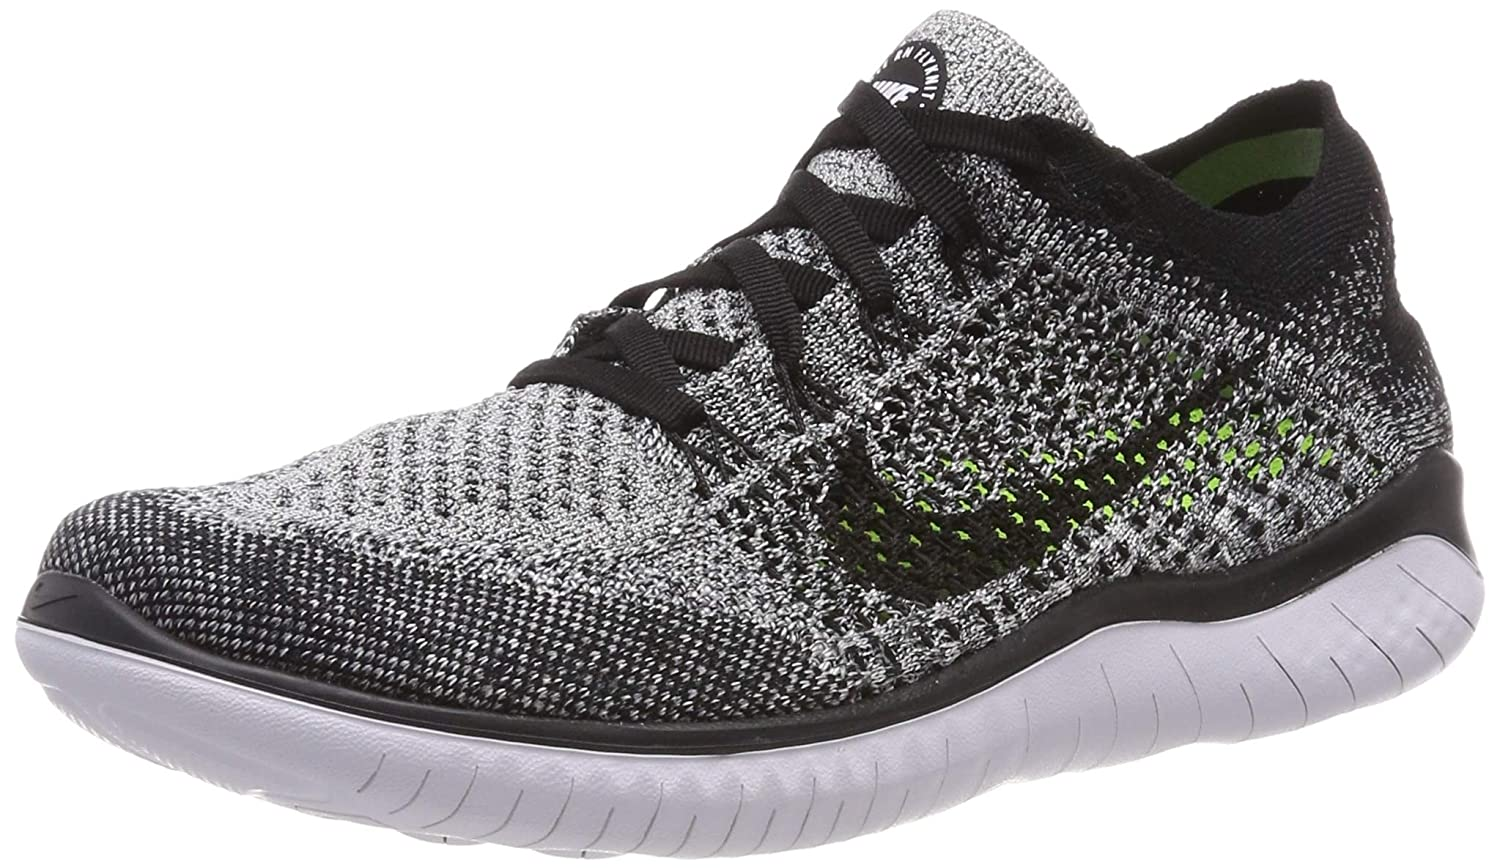 adbdad7c48 Nike Men's Free RN Flyknit 2018 Running Shoes (12, Black/White/Black)